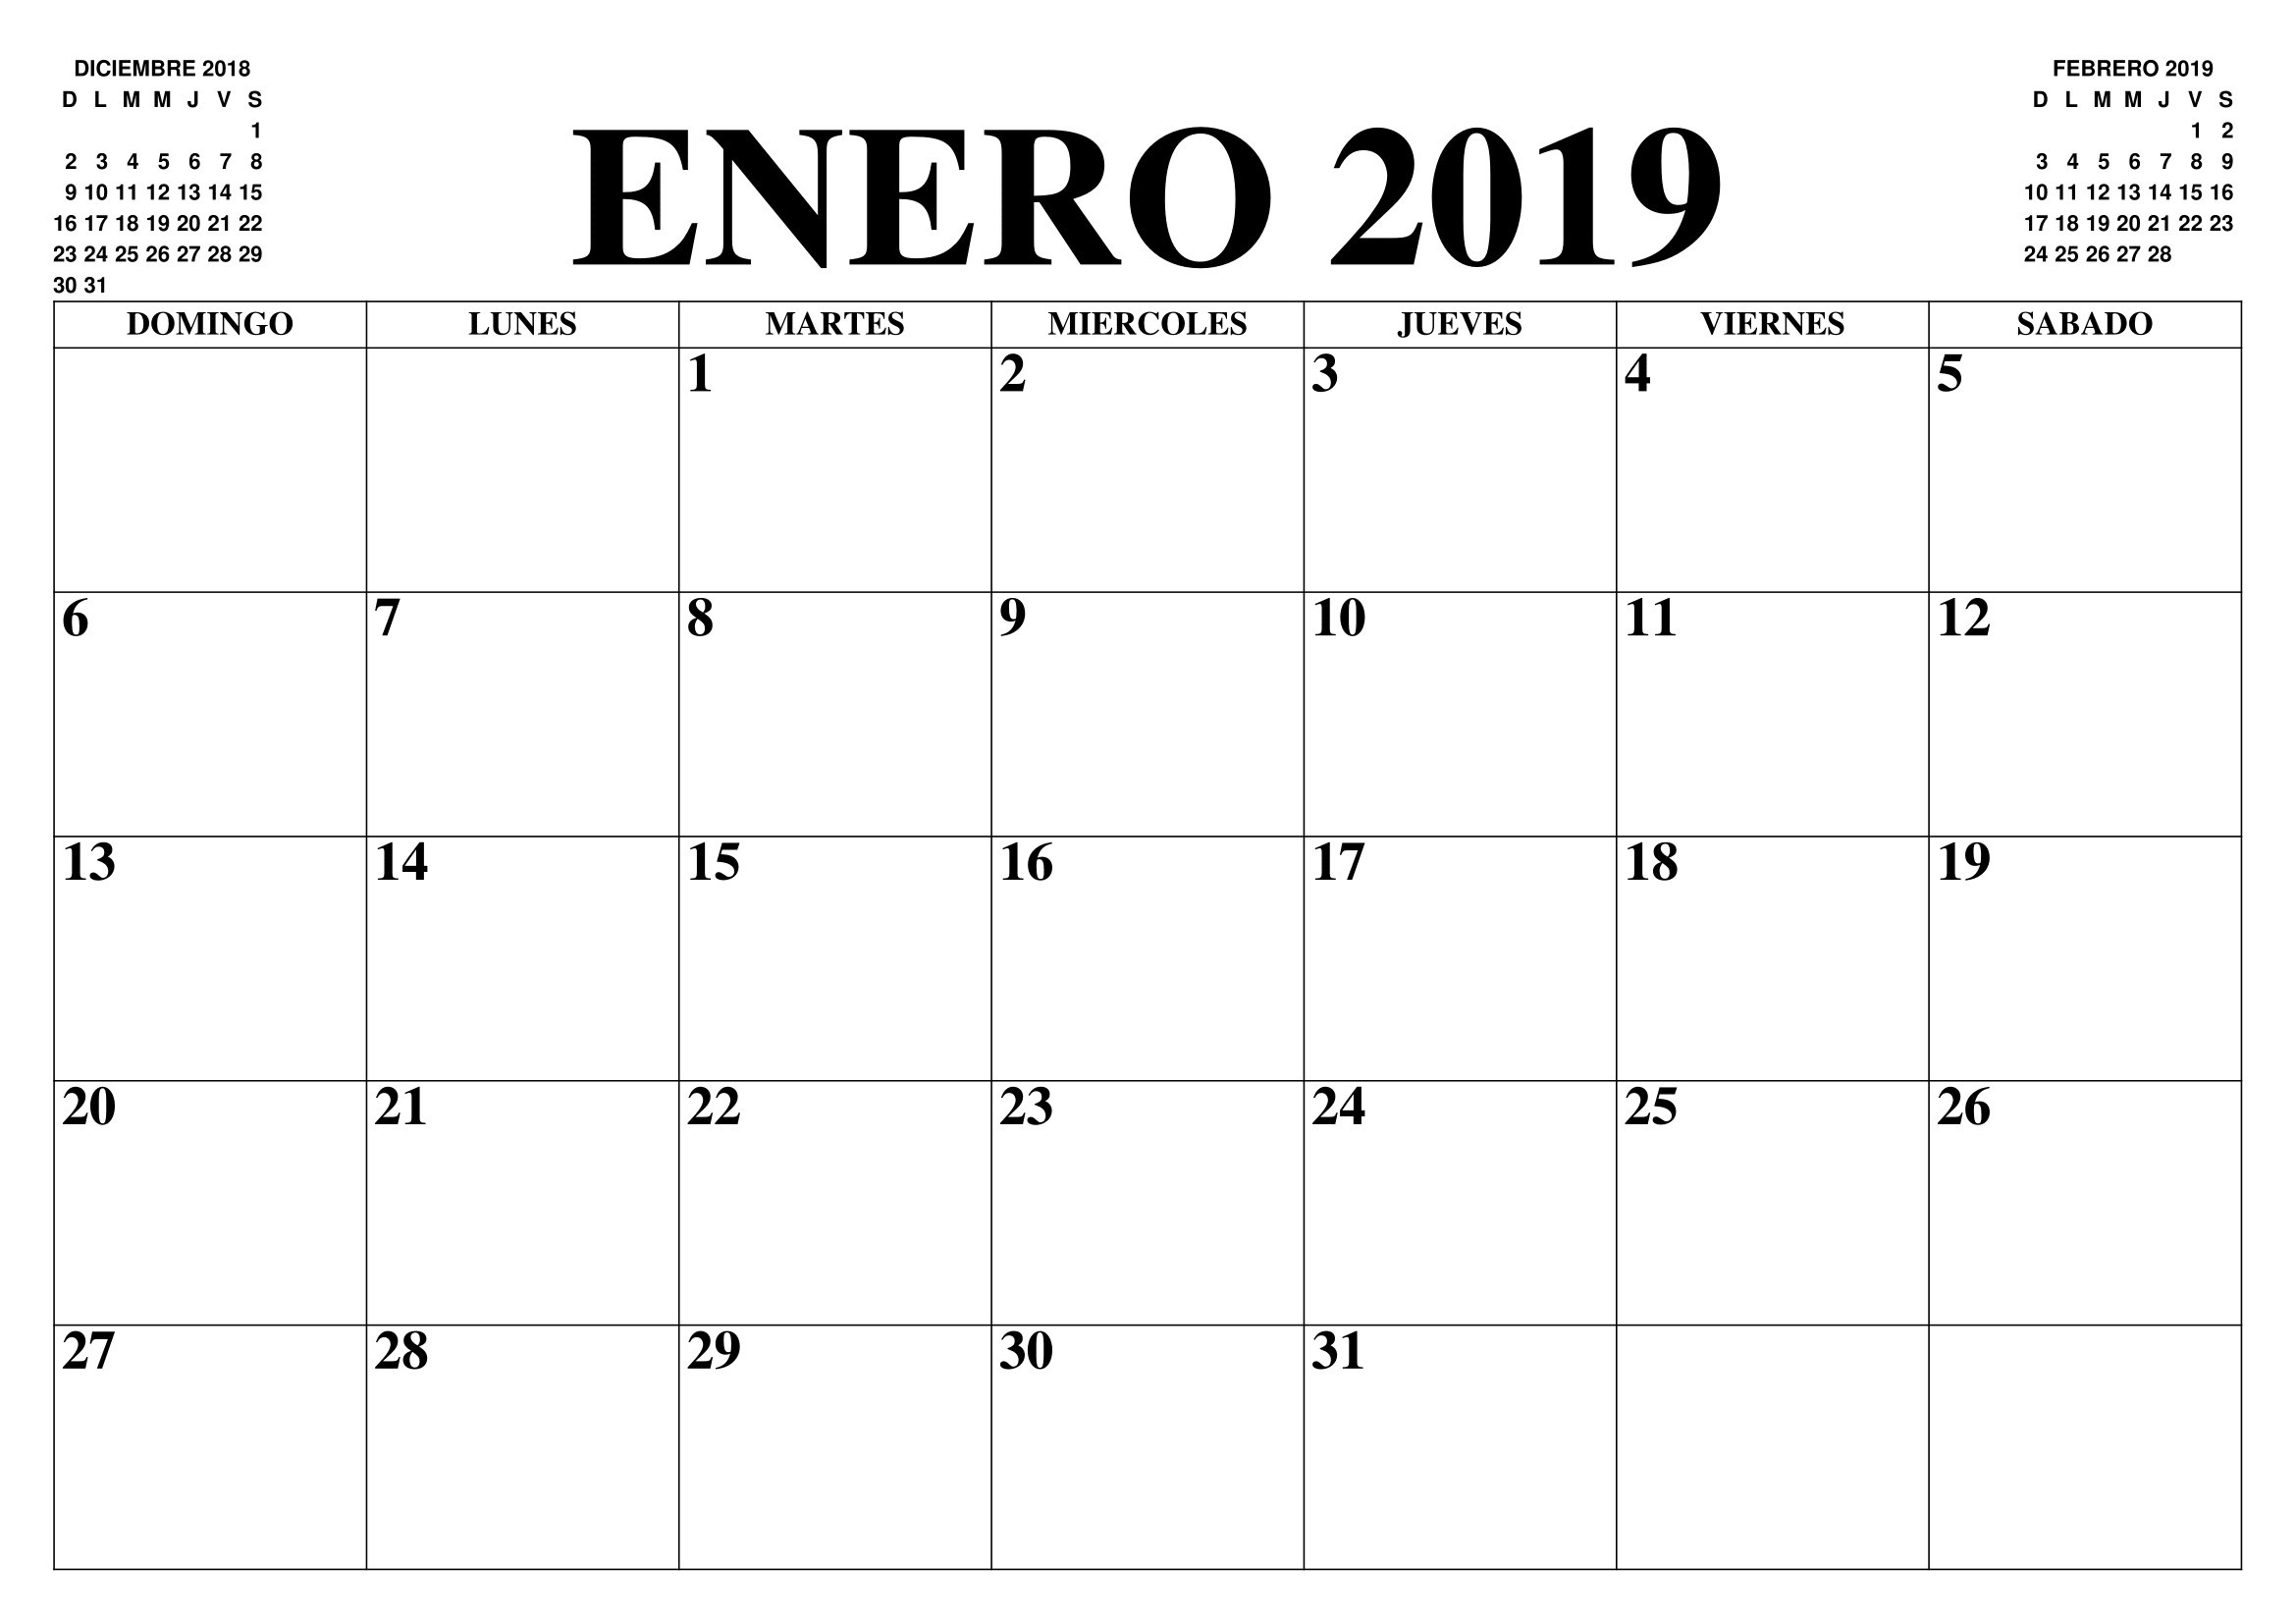 Calendario 2019 Mes A Mes.Top 10 Punto Medio Noticias Calendario 2019 Chile Con Feriados